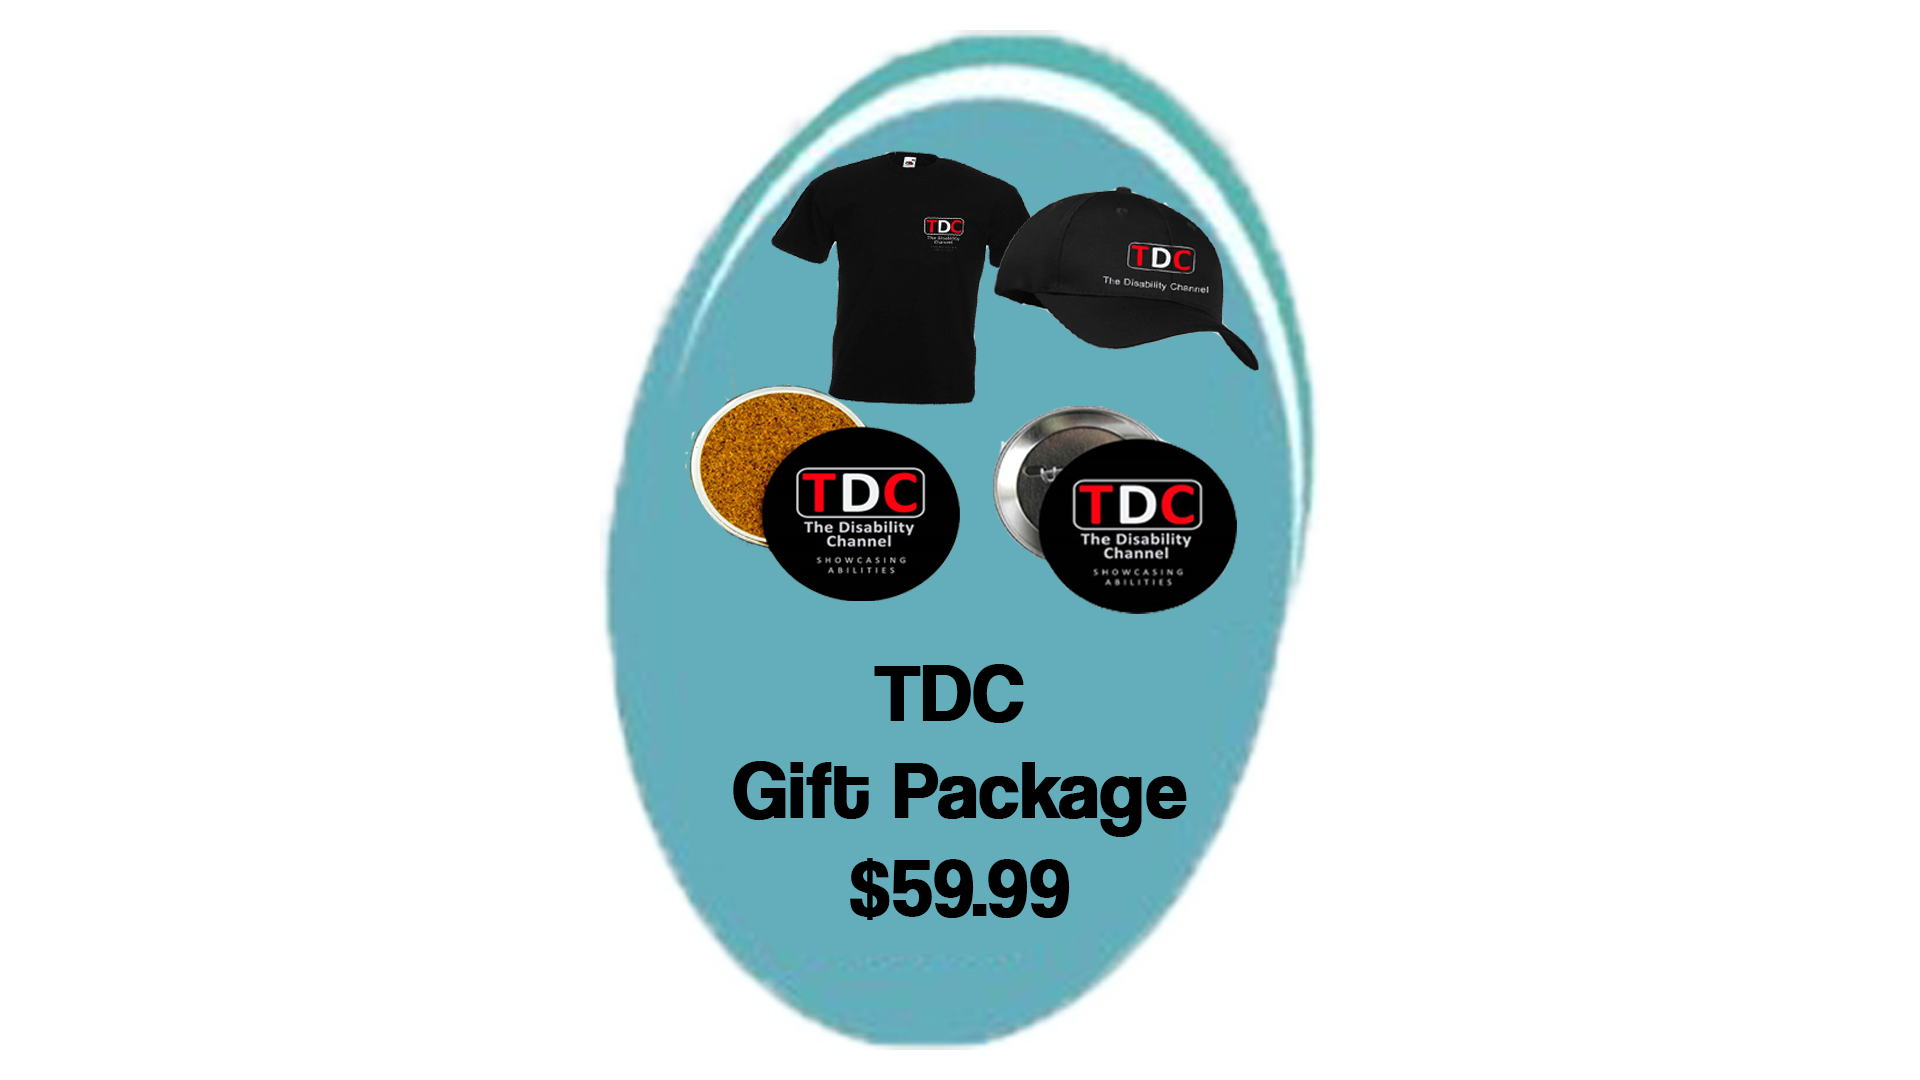 TDC Gift Package - contains shirt, hat, coasters, buttons - $59.99